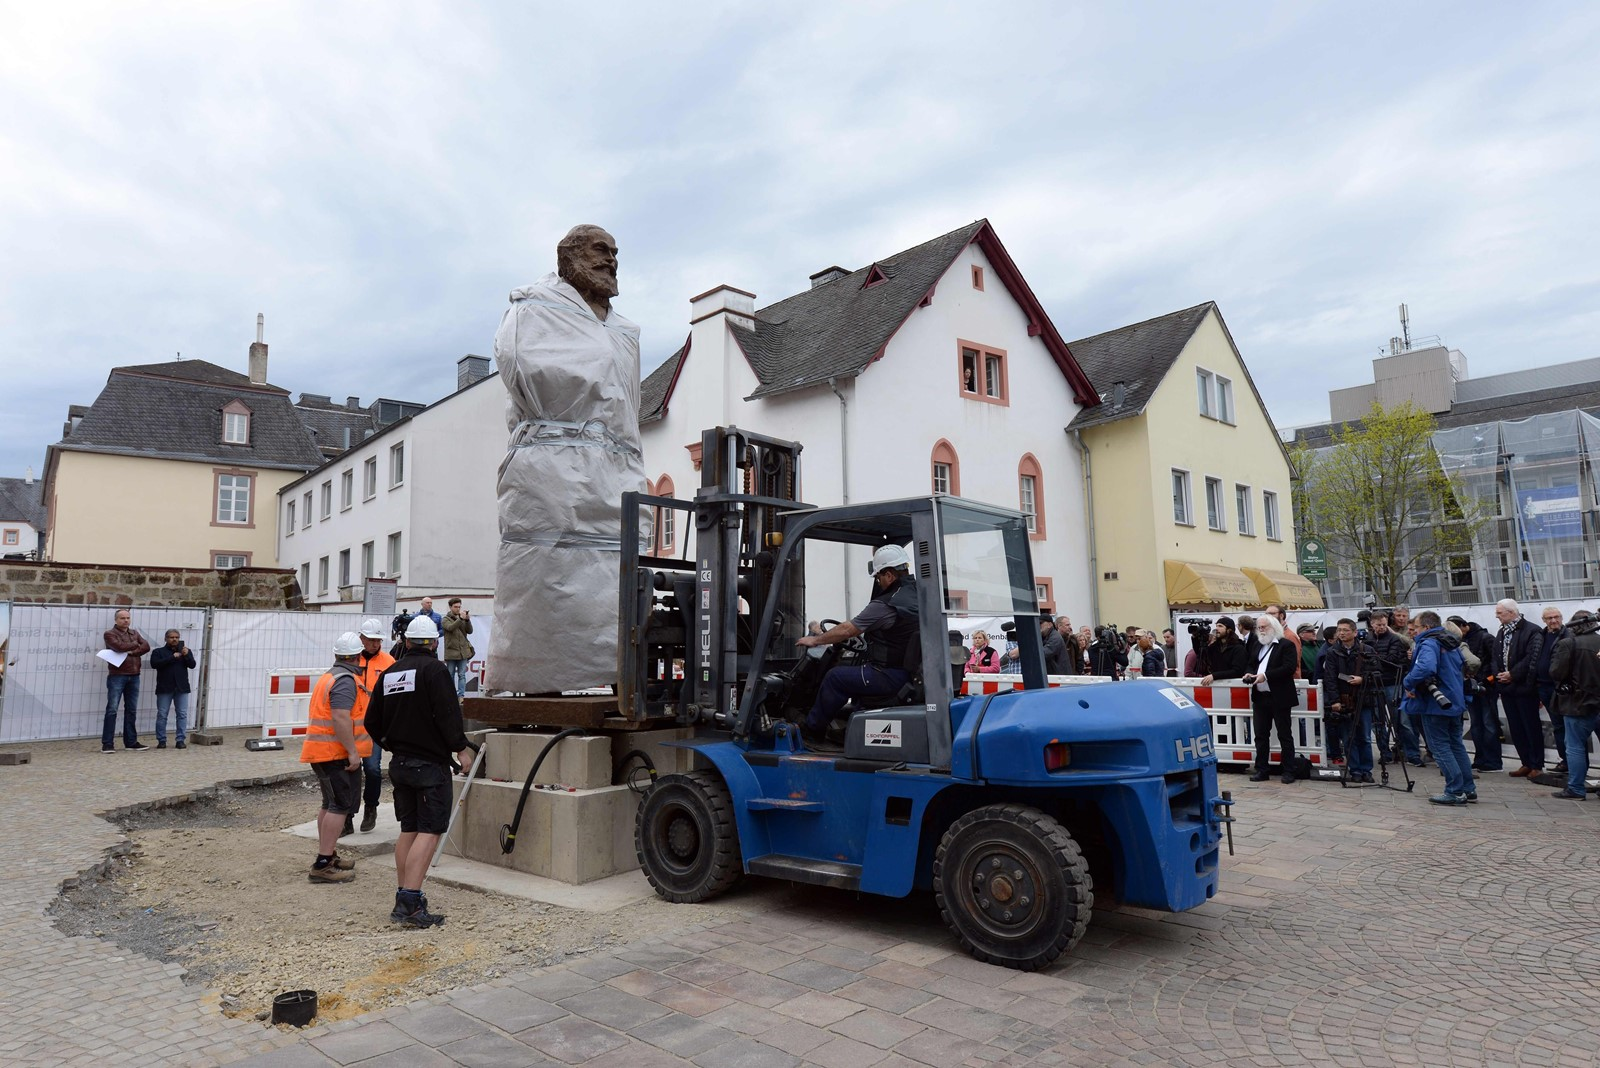 Workers install a statue of Karl Marx in Trier, Germany, which is planning a year of events to celebrate the founding father of communism. The fact that the statue is a gift from China has only added to the controversy. — Photograph: Harald Tittel/Agence France-Presse/Getty Images.